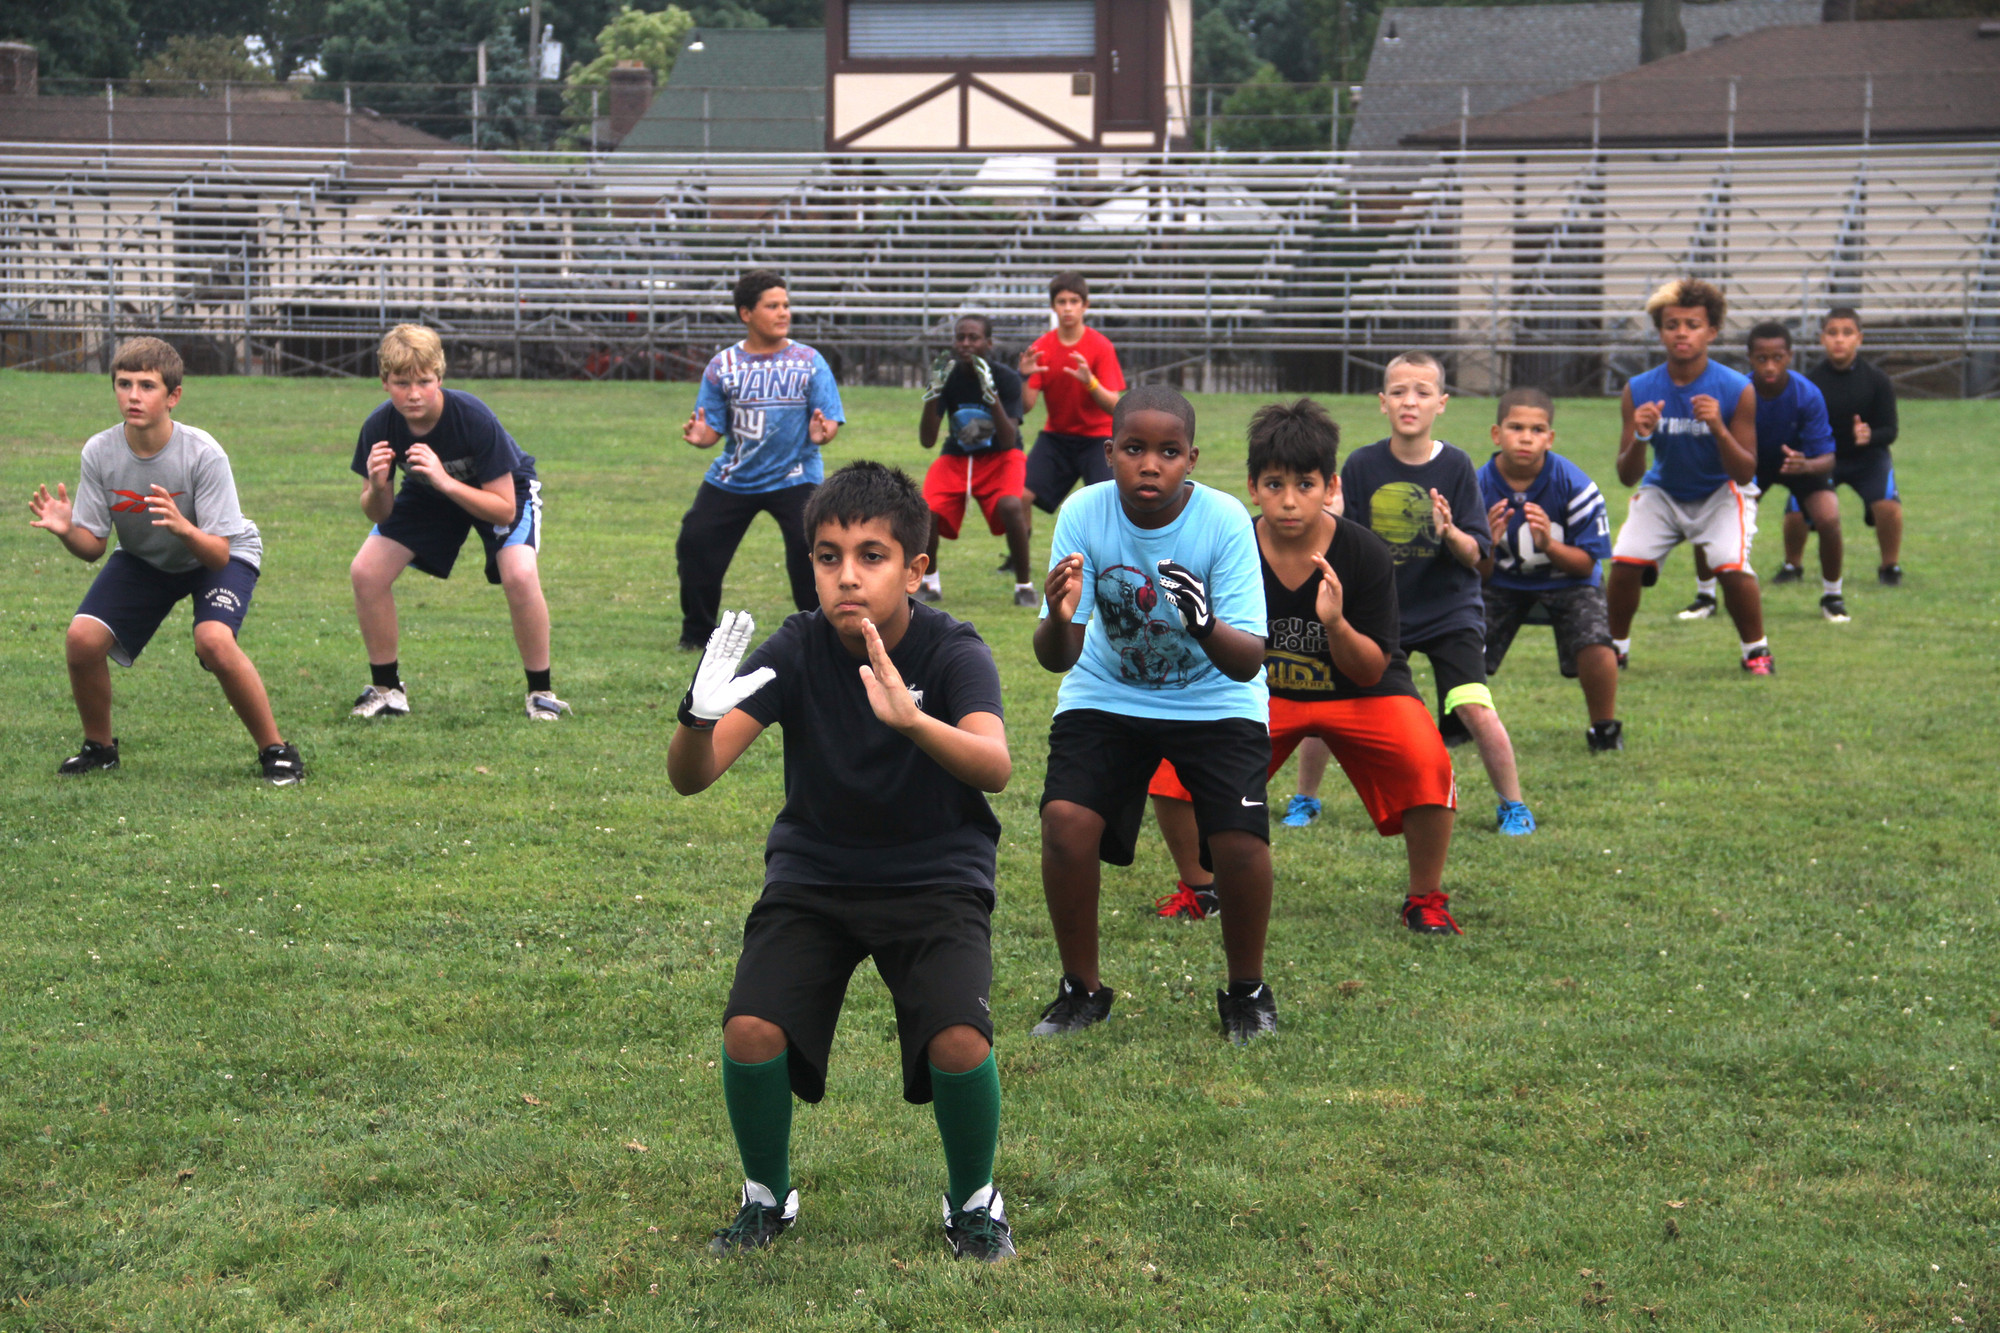 Green Hornets players took part in a four-day skill camp last week at Firemen�s Field to get ready for the 2013 football season.